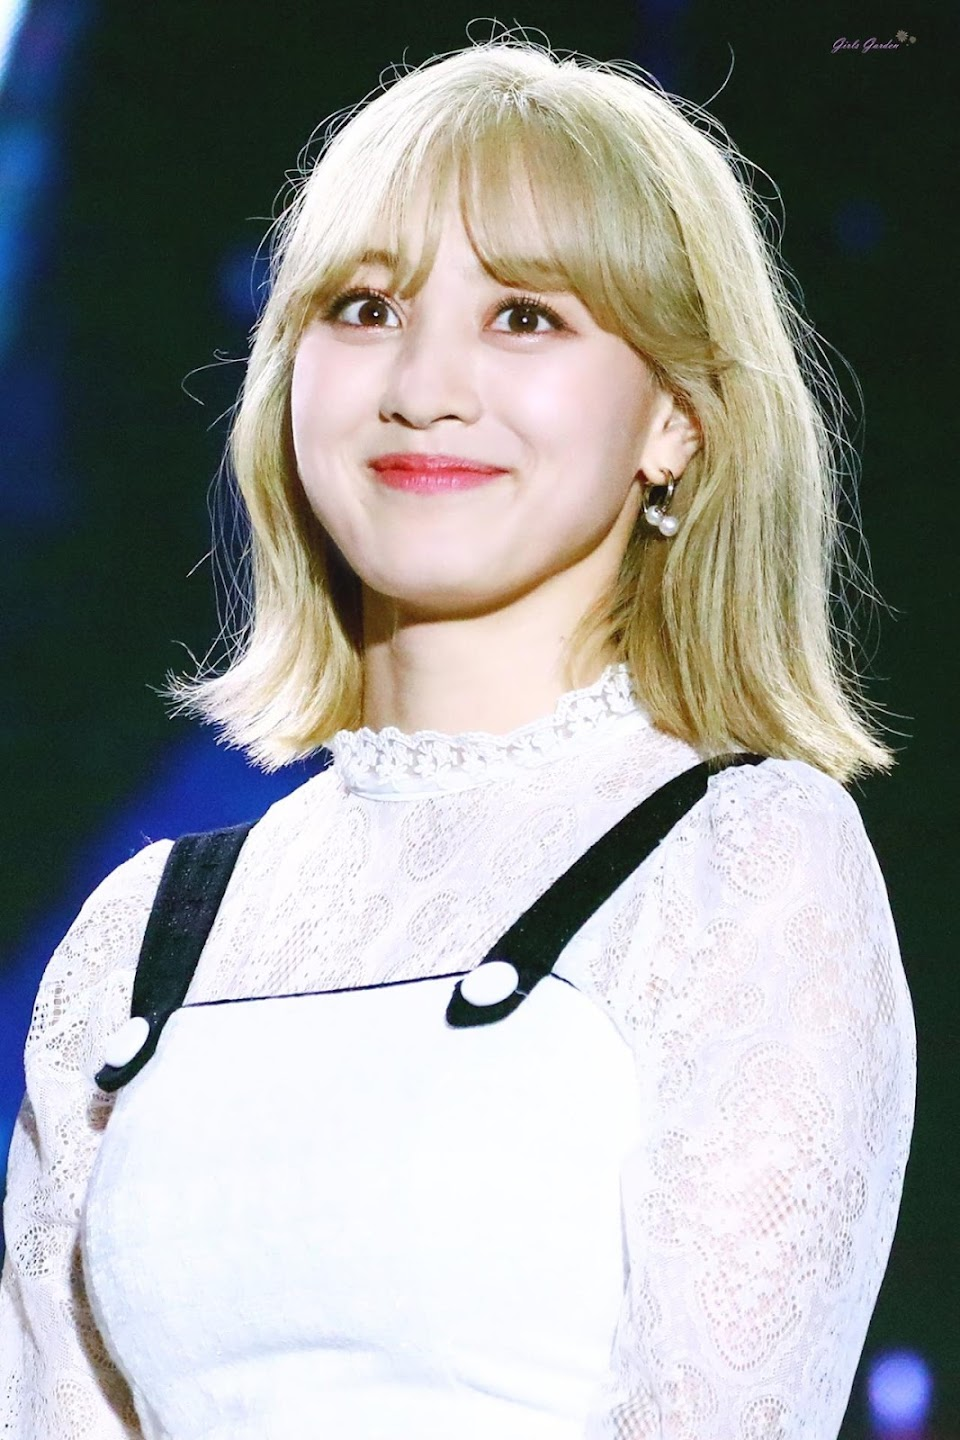 jihyo blonde 1